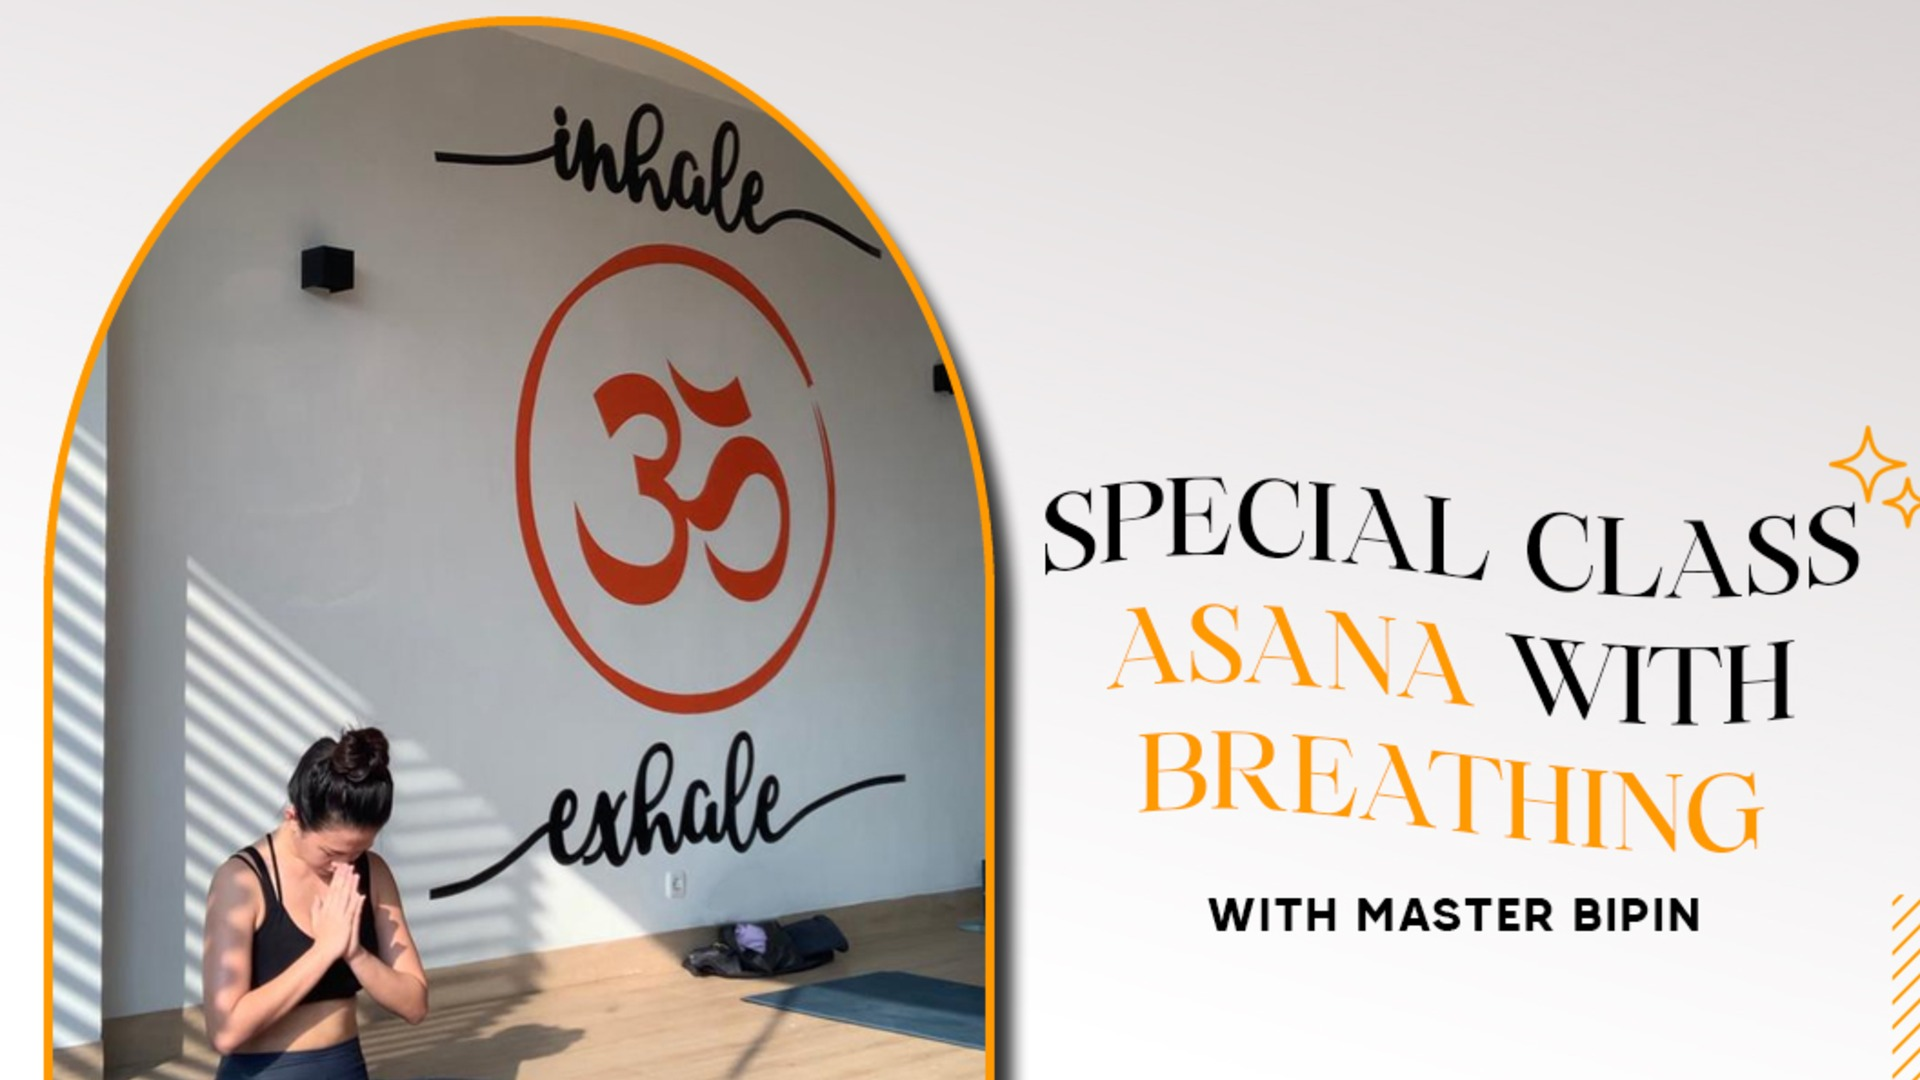 Special Class Asana with Breathing